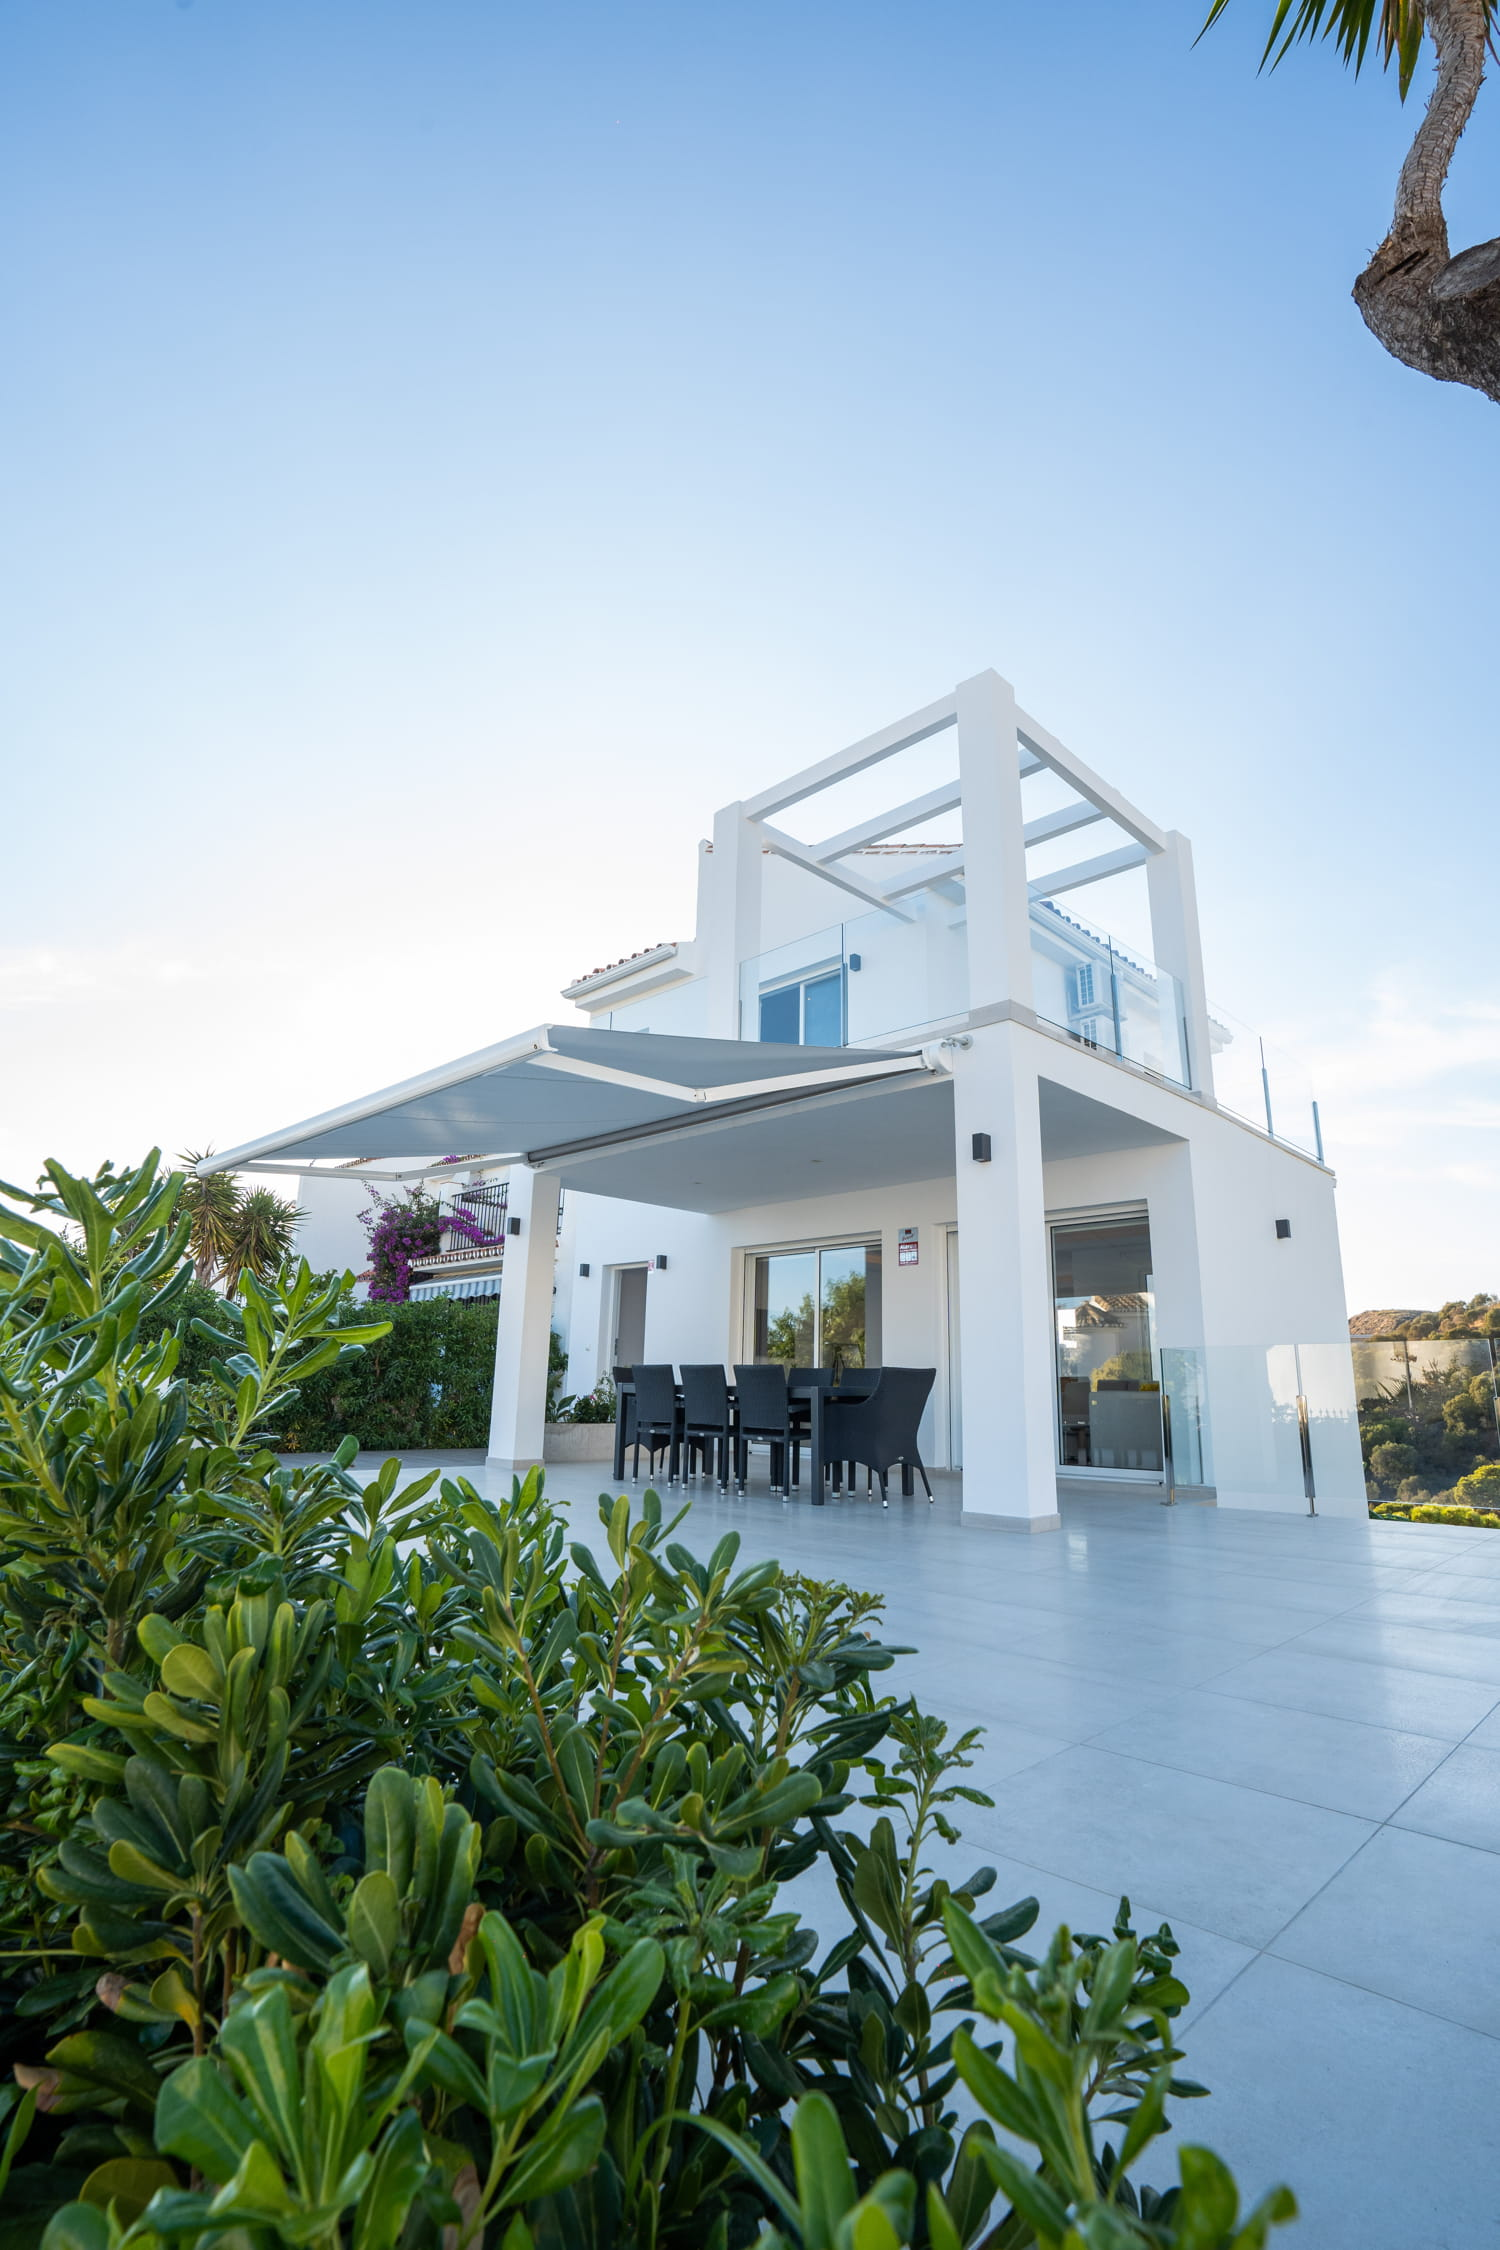 reforma integral villa mijas costa u projects (26)